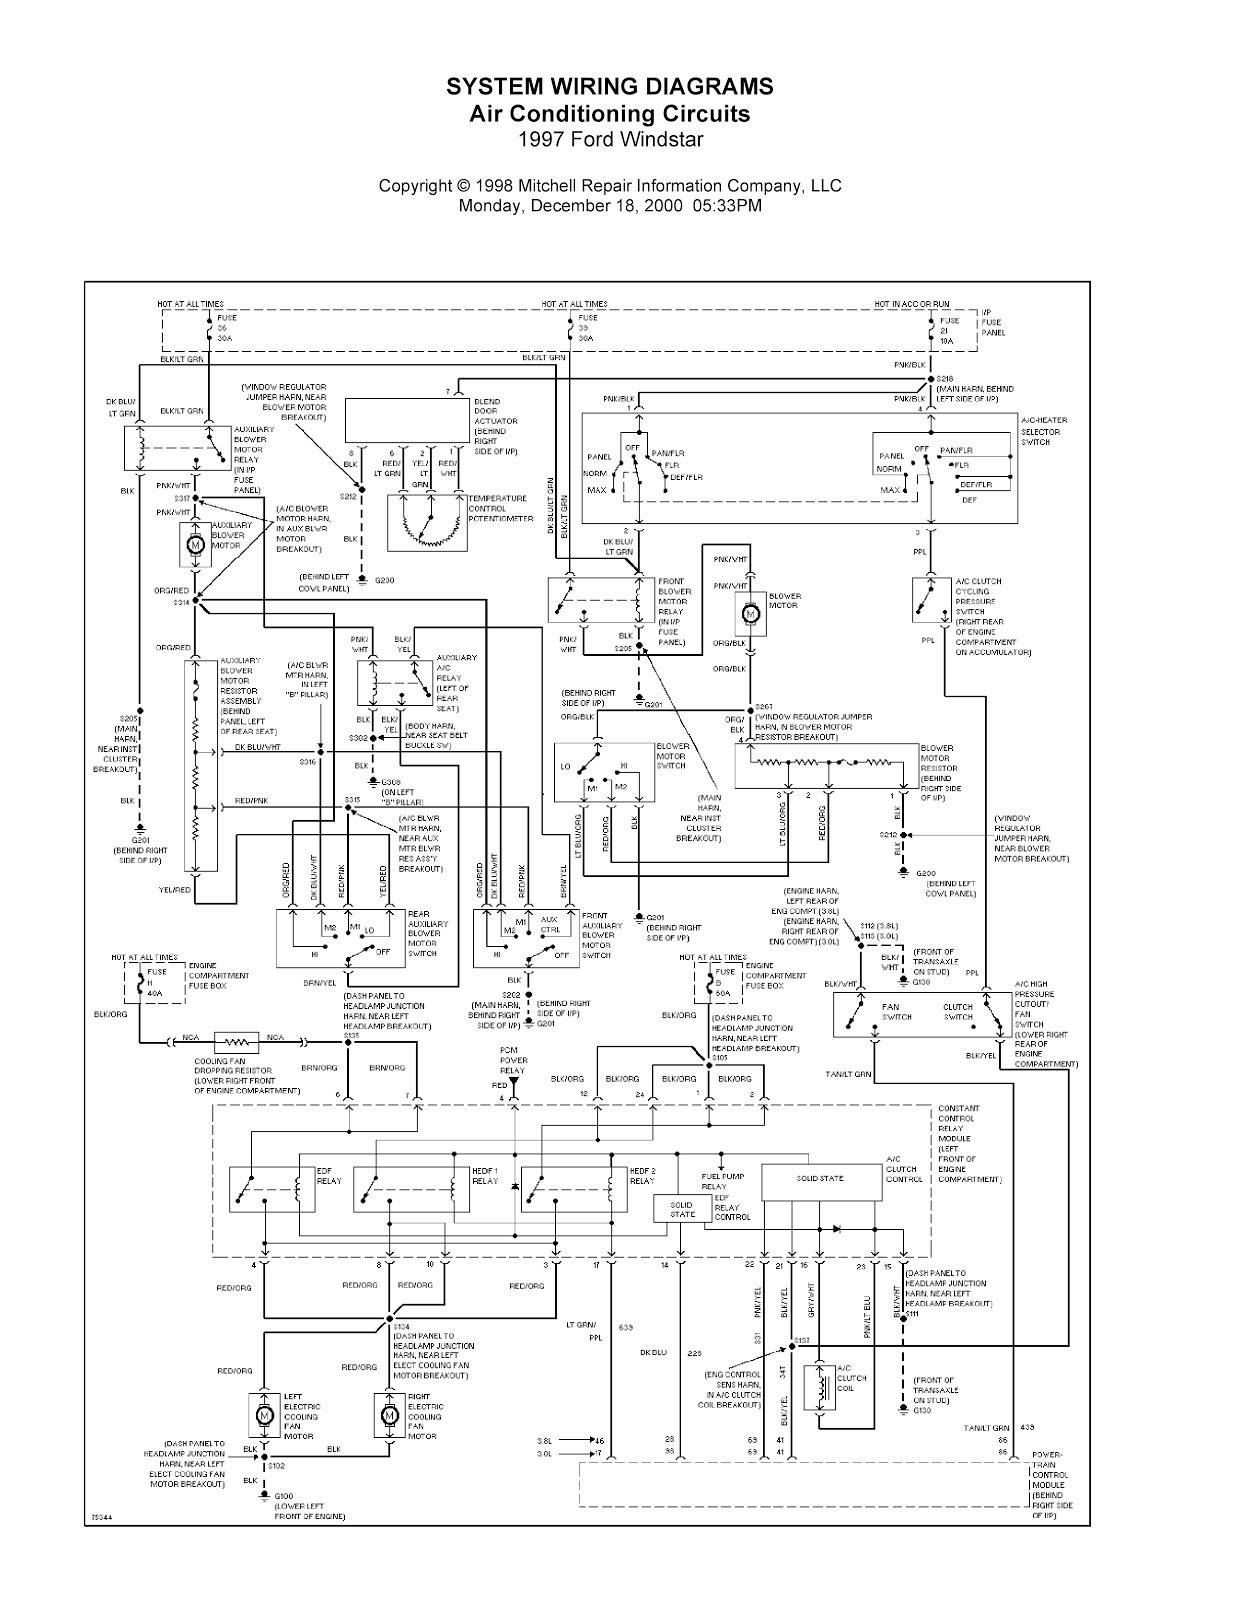 hight resolution of 1998 ford windstar wiring schematic wiring diagram blog 98 ford windstar wiring diagram 1998 ford windstar wiring schematic